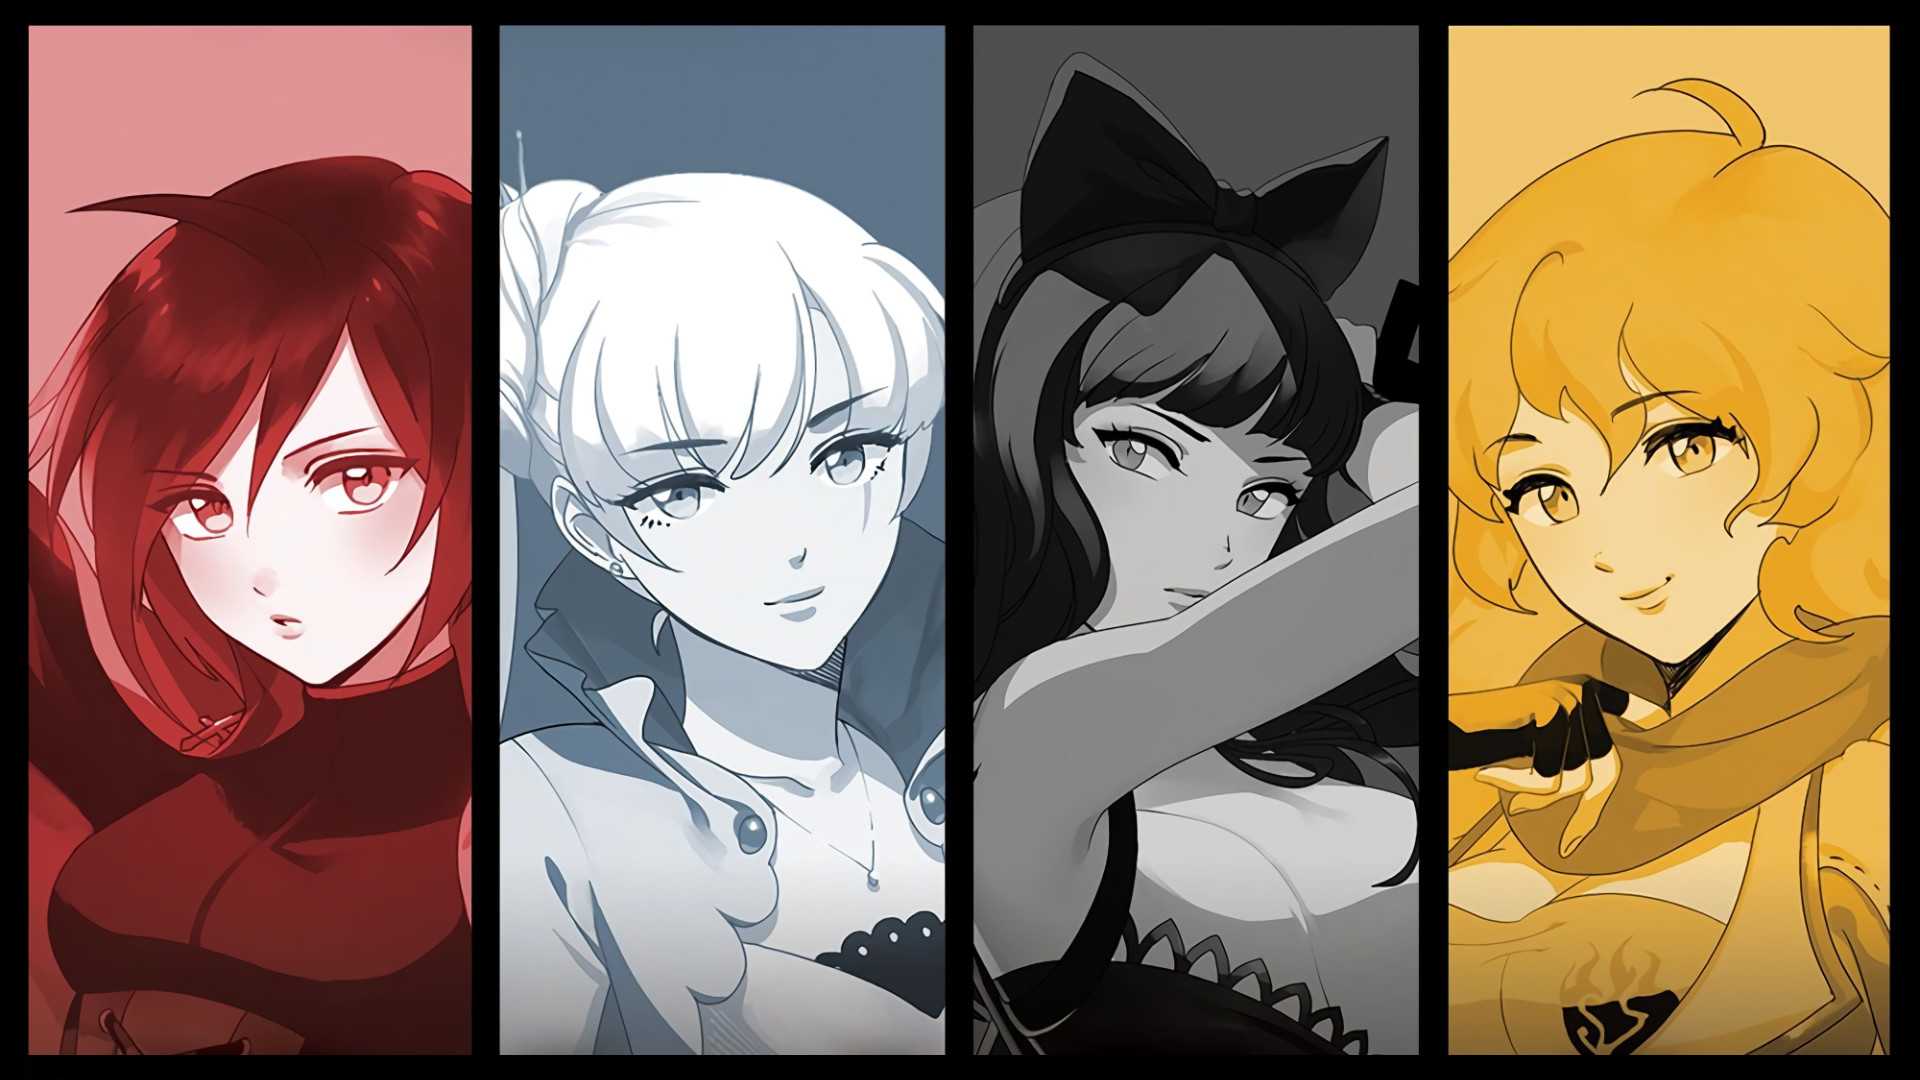 Res: 1920x1080, Here is a 1080p Wallpaper I put together.